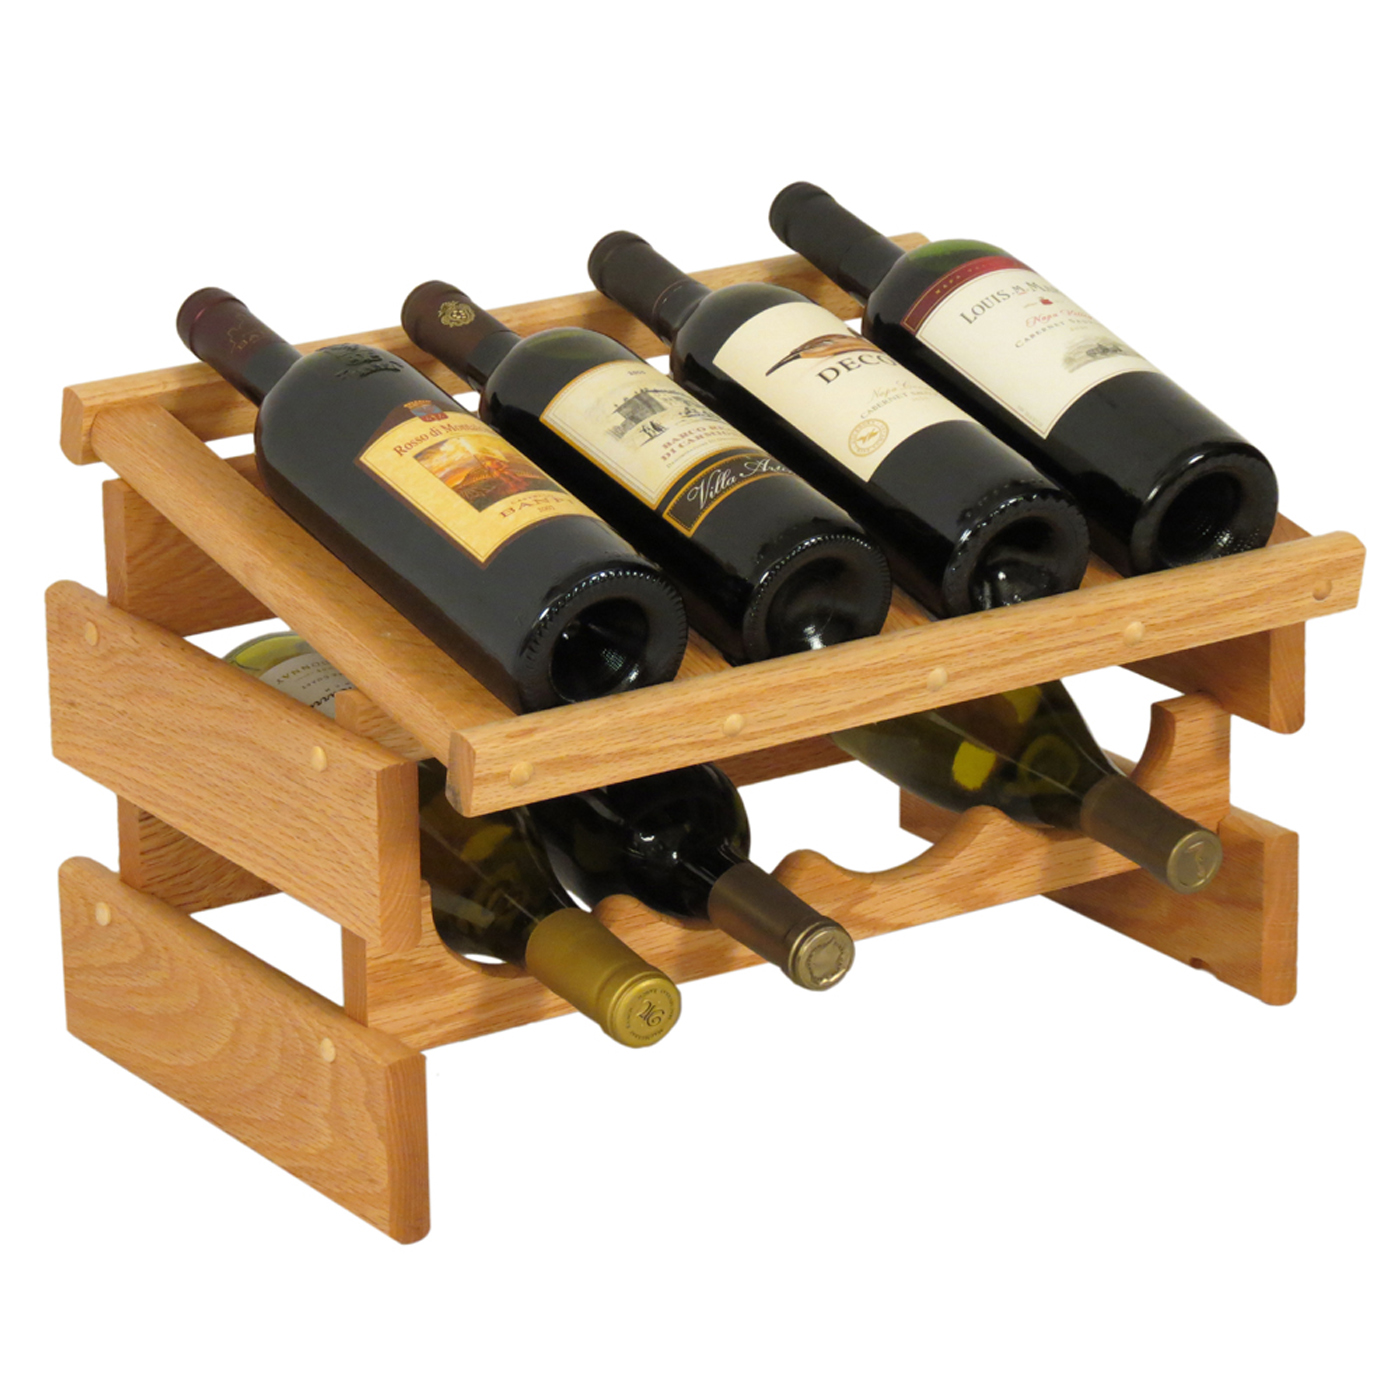 warm pallets hgtv for from make pallet wine out of wooden to rack wood how racks made a